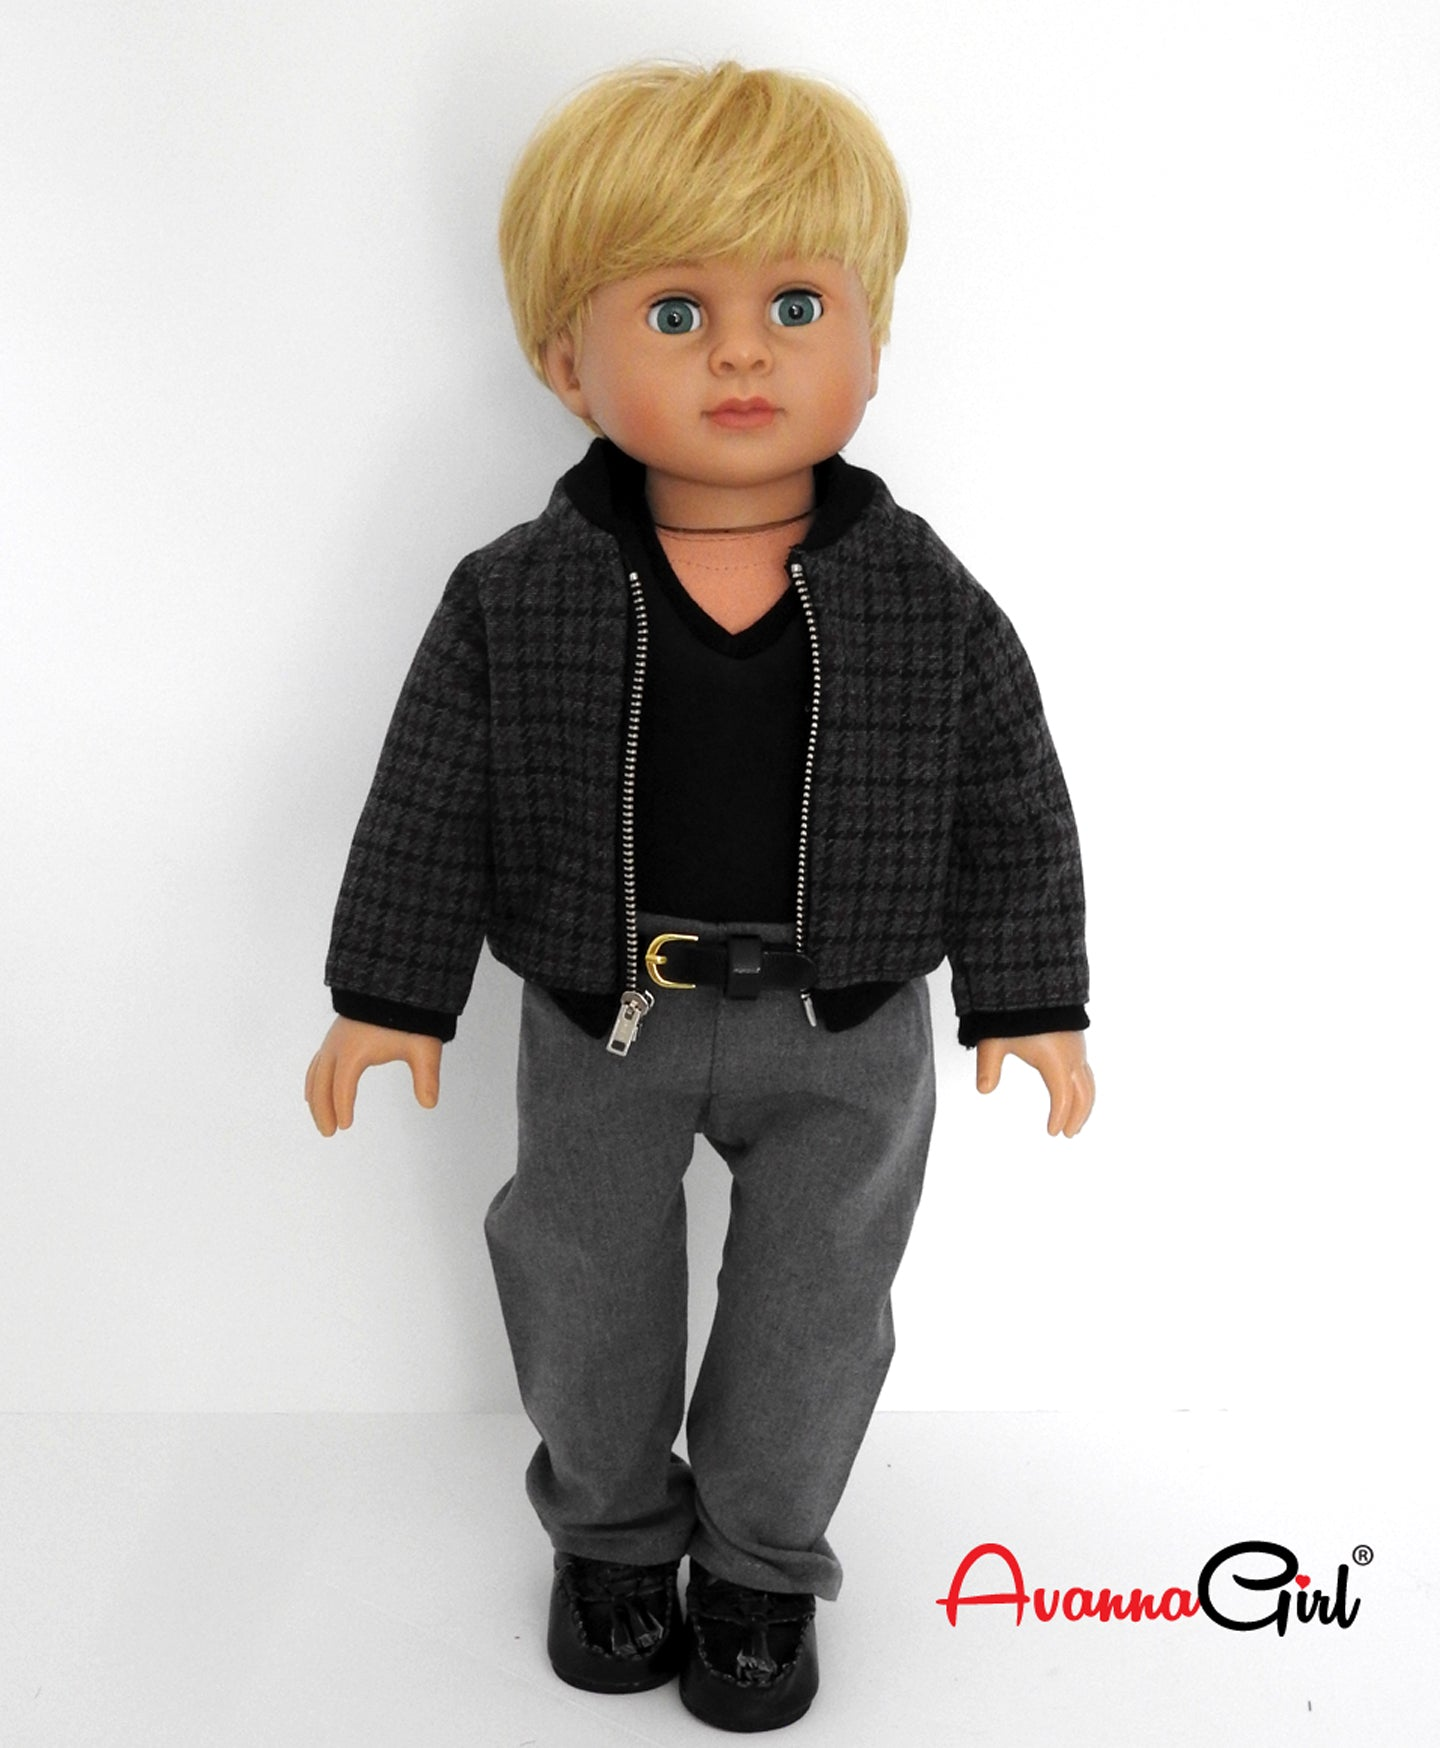 18 Inch Boy Doll Bomber Jacket and Outfit